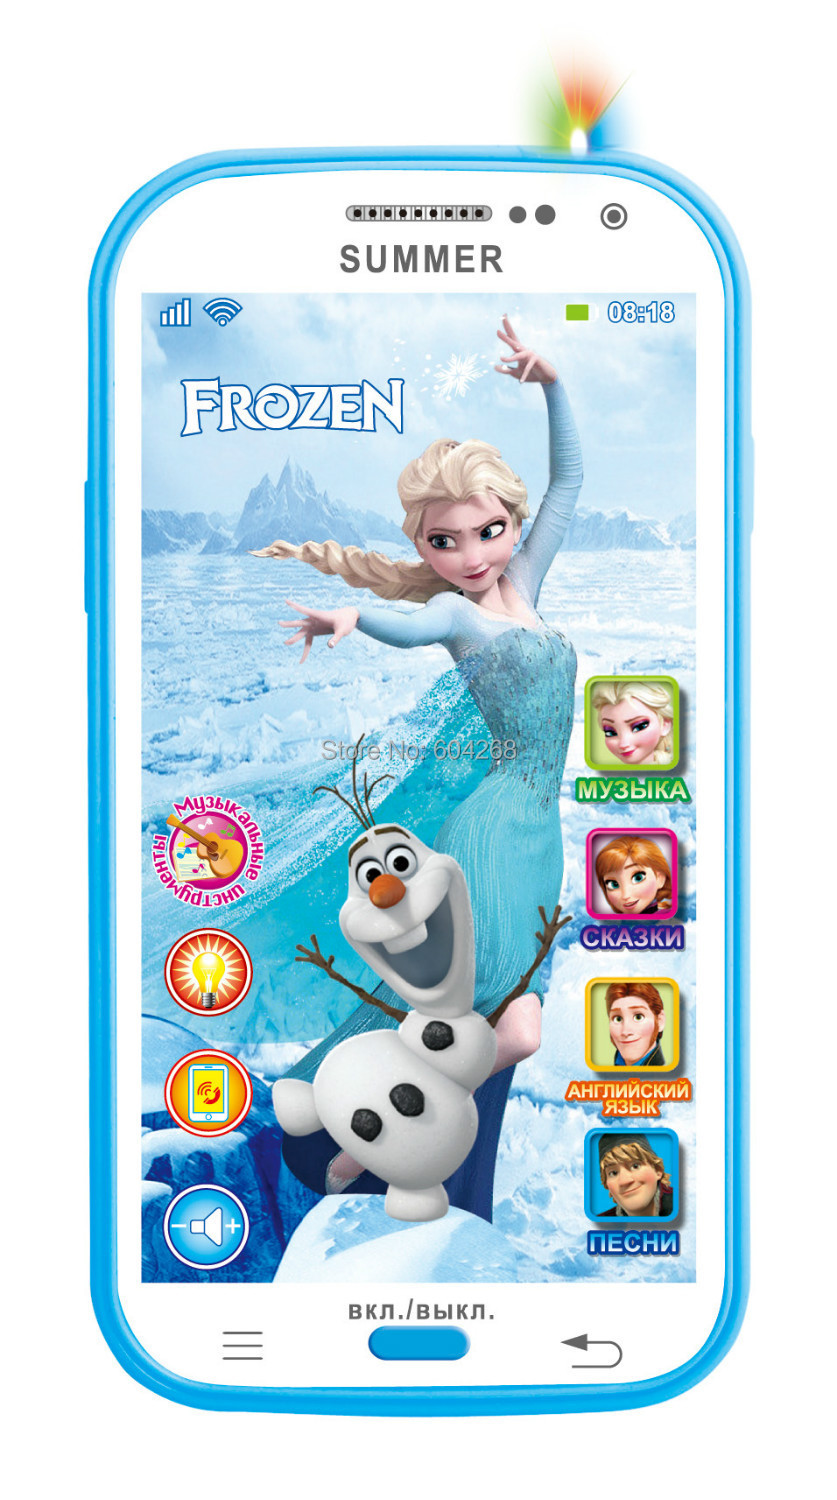 Language Learning Toys : Electronic toys russian language frozen toy phones